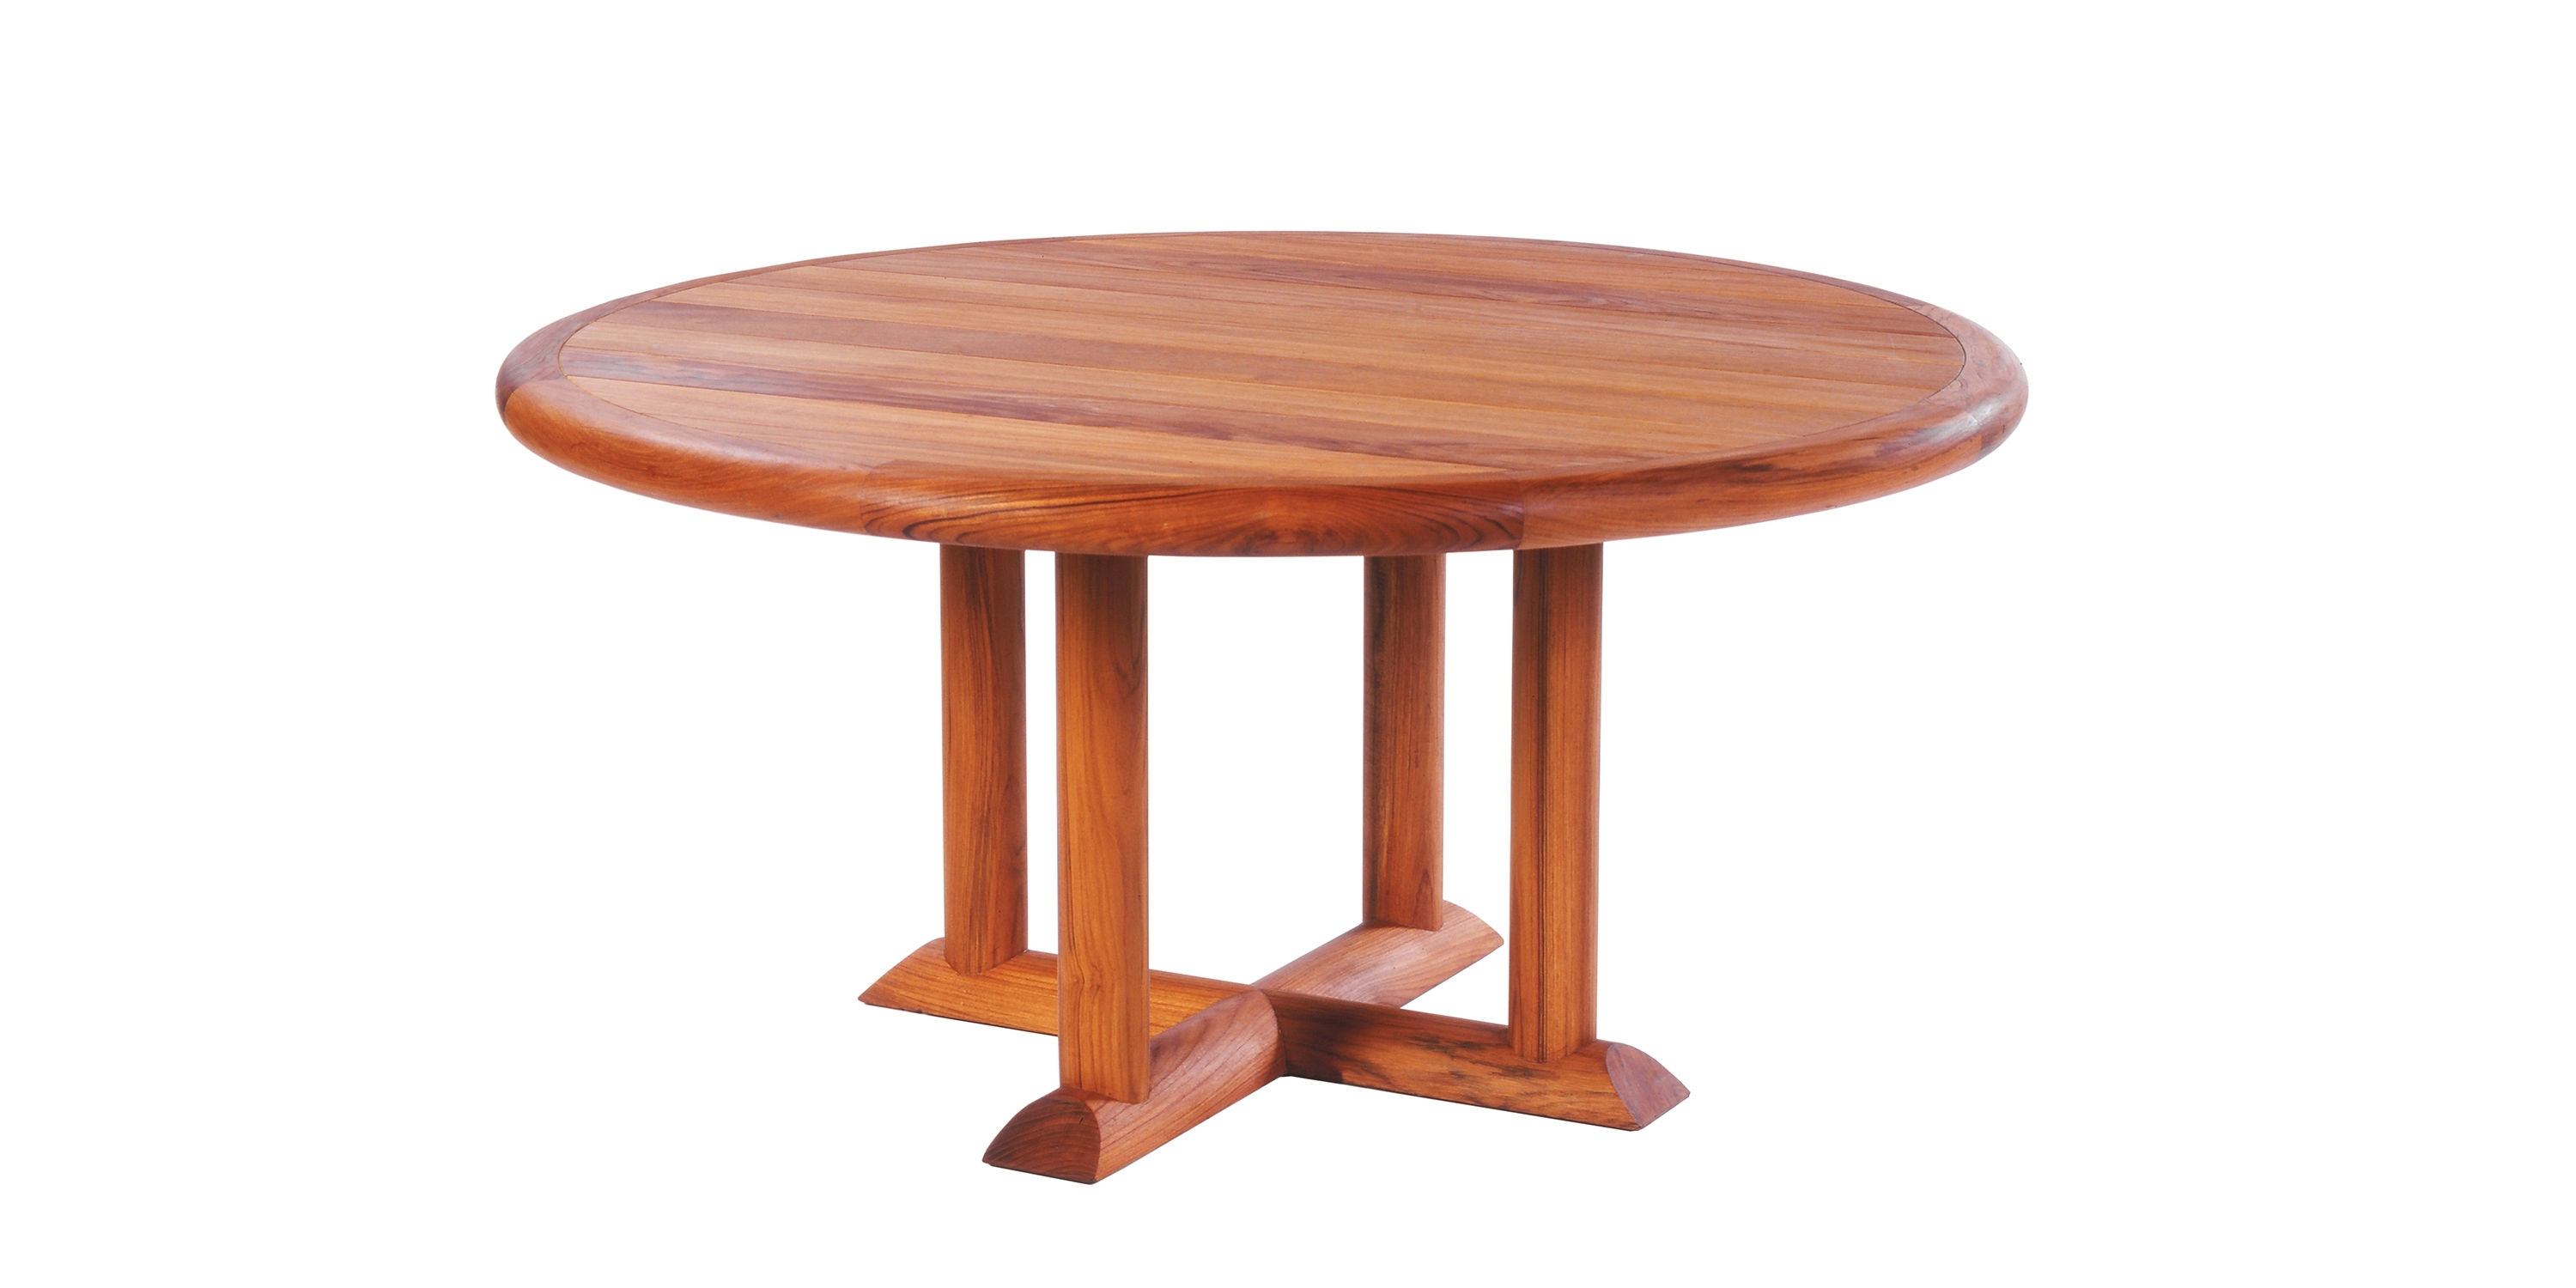 Round Teak Dining Tables Intended For Recent Douglas Teak Round Dining Table (View 14 of 25)